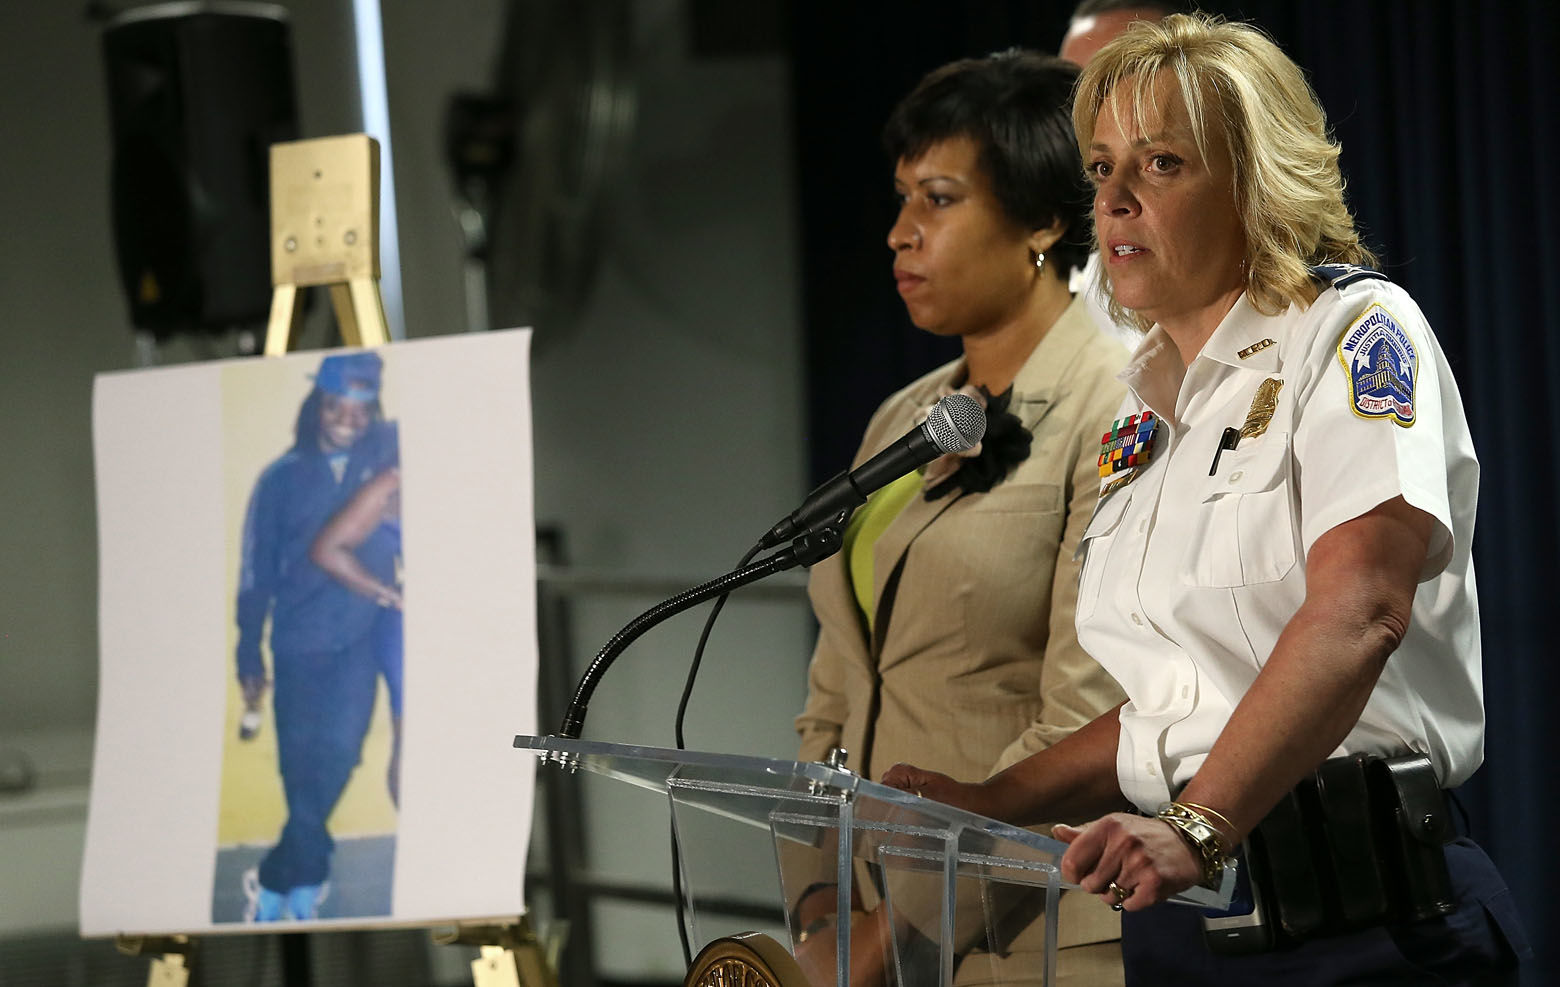 WASHINGTON, DC - MAY 21: Mayor Muriel Bowser (L) of Washington, DC listens as Chief of the Metropolitan Police Department Cathy Lanier (R) speaks at a press conference at police headquarters May 21, 2015 in Washington, DC. Bowser and Lanier asked the public for help in locating a suspect, Daron Dylon Wint, in a quadruple murder in the killing of Savvas Savopoulos and his family. Authorities believe Wint may have traveled to the Brooklyn, New York area. (Photo by Win McNamee/Getty Images)